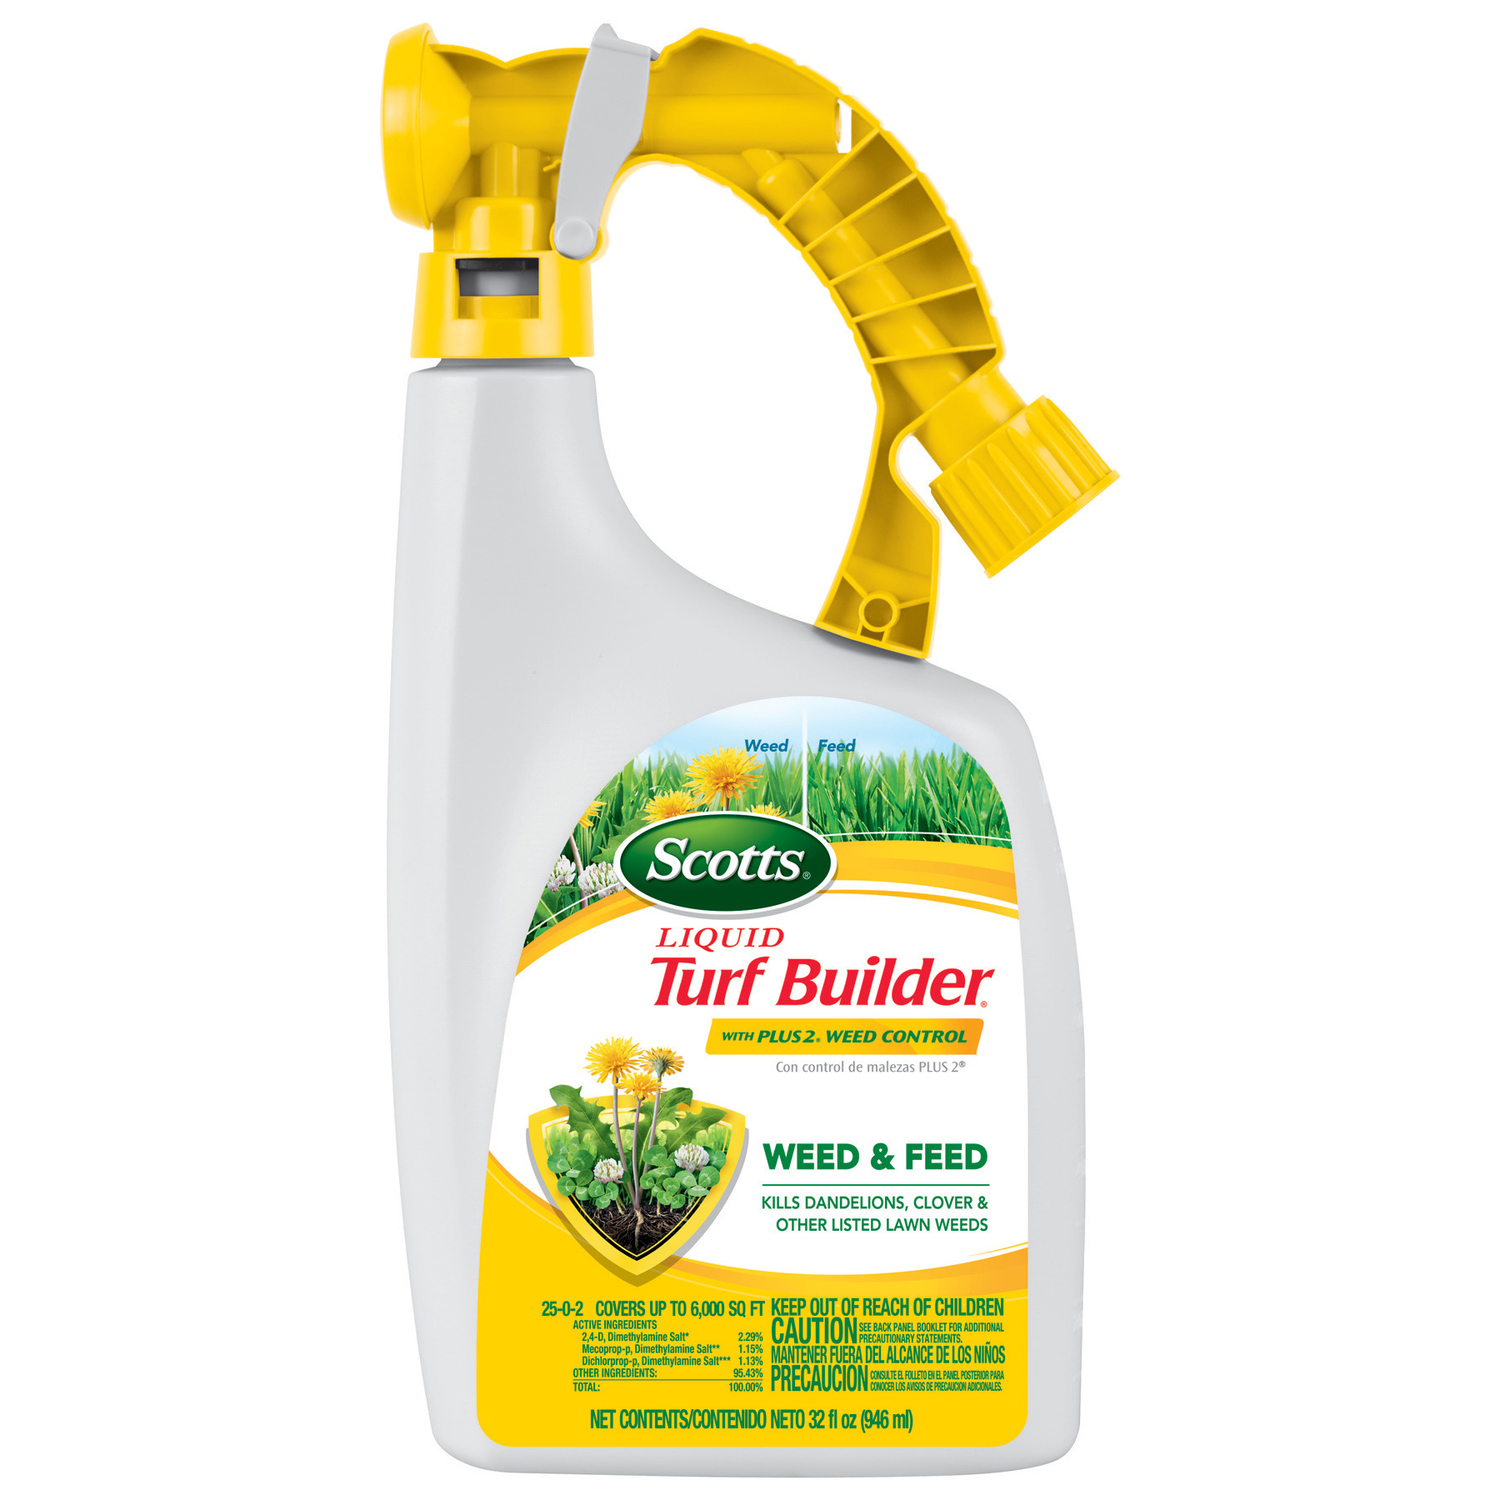 Scotts  Turf Builder  25-0-2  Weed and Feed  For All Grass Types